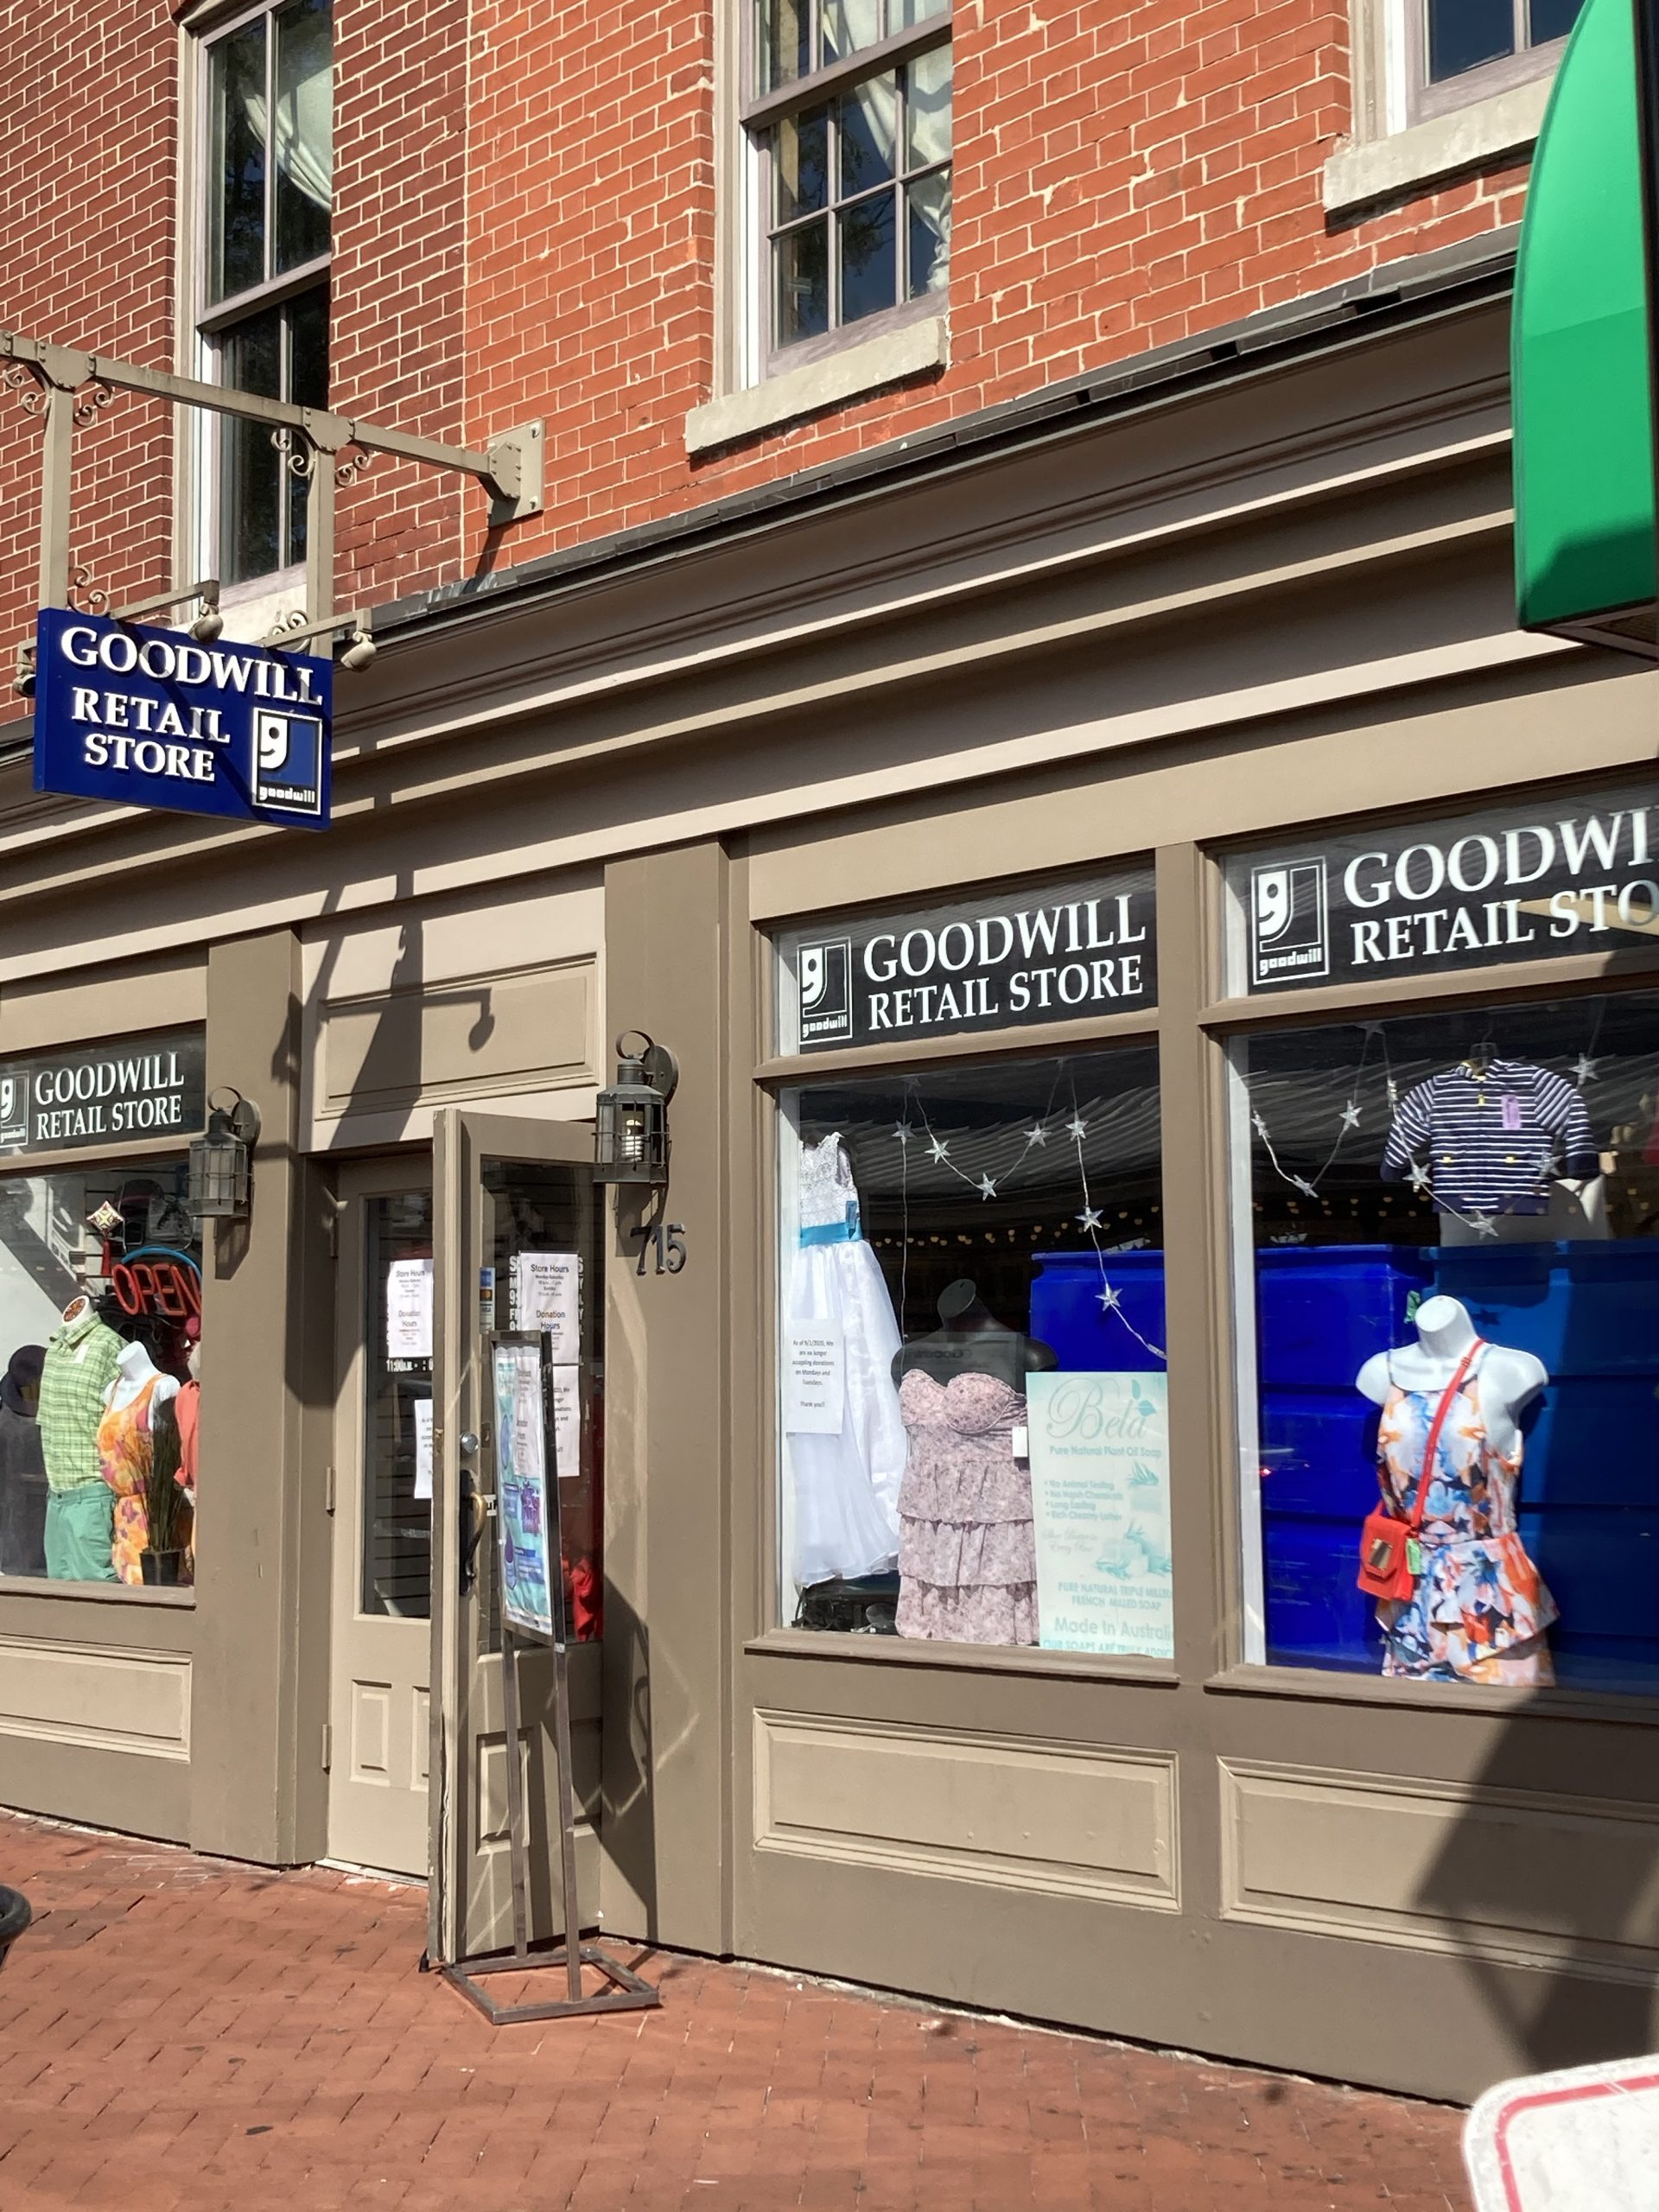 Goodwill Store in Fells Point